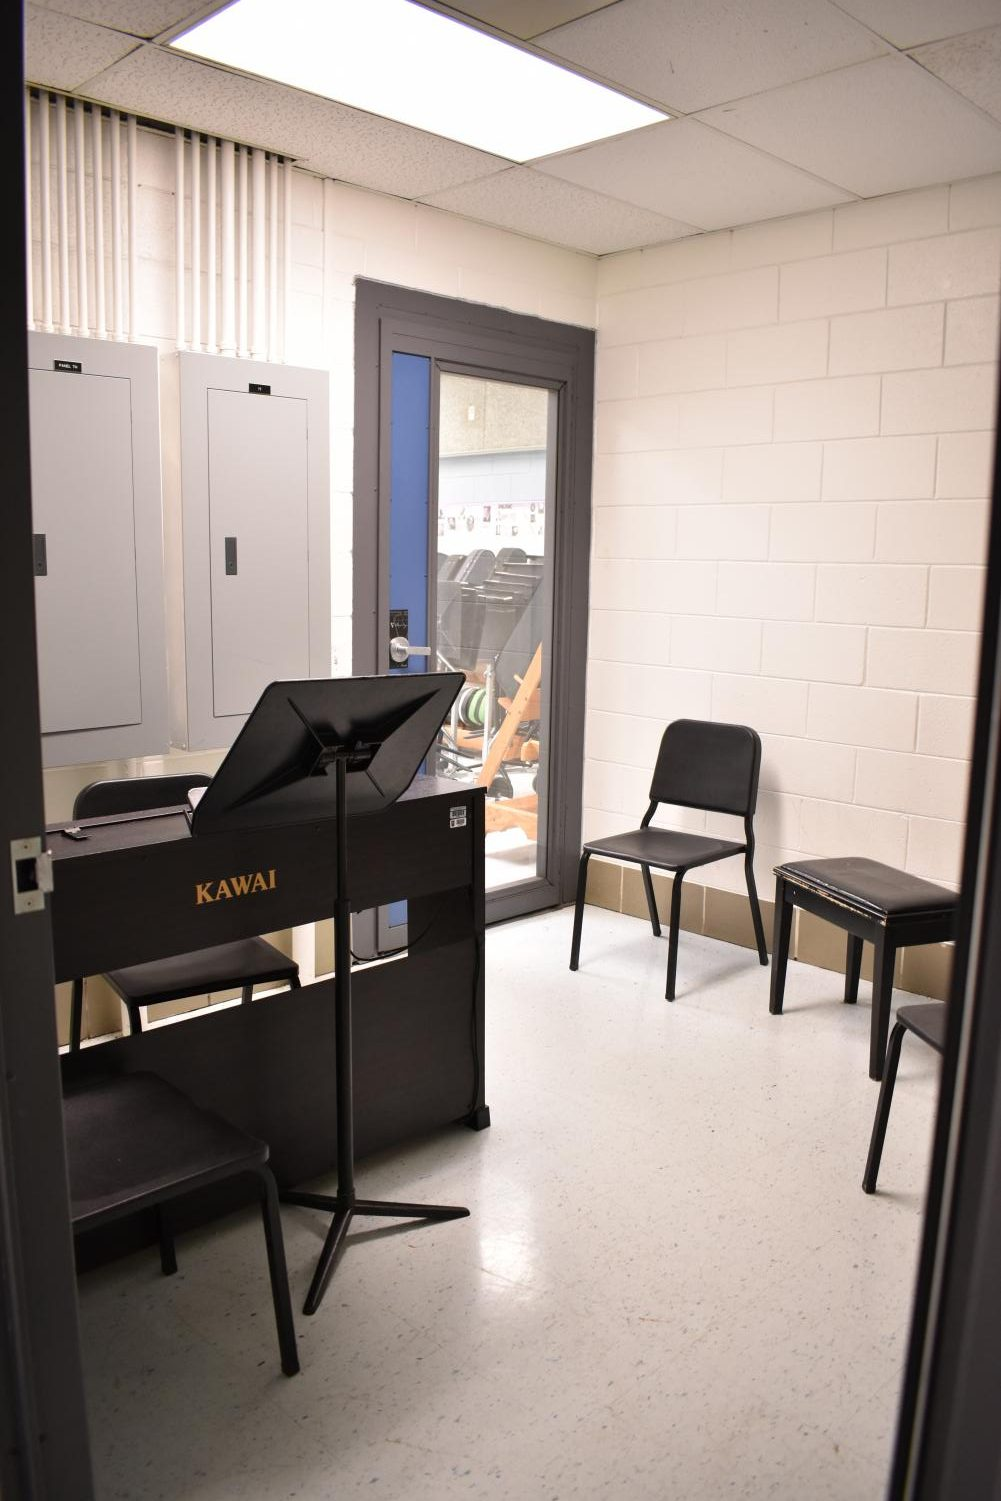 Where M2 lessons take place, The practice room.